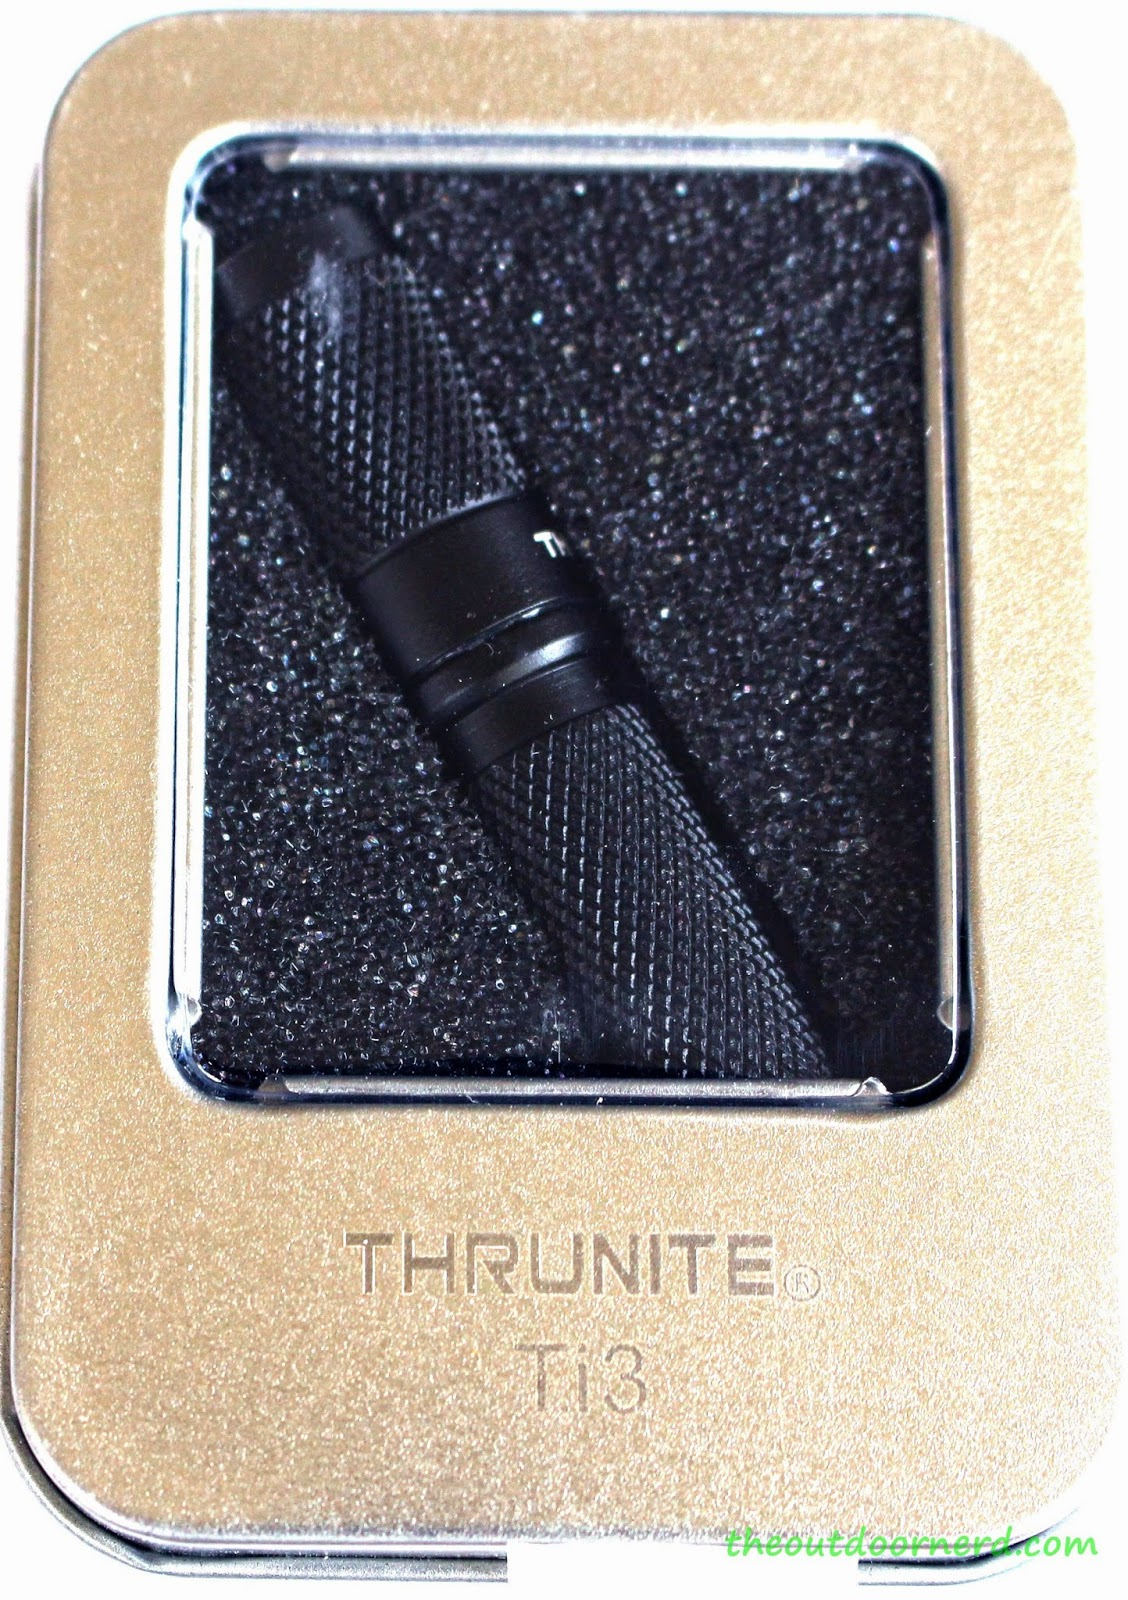 Thrunite Ti3 1xAAA EDC Flashlight: Packaging 2